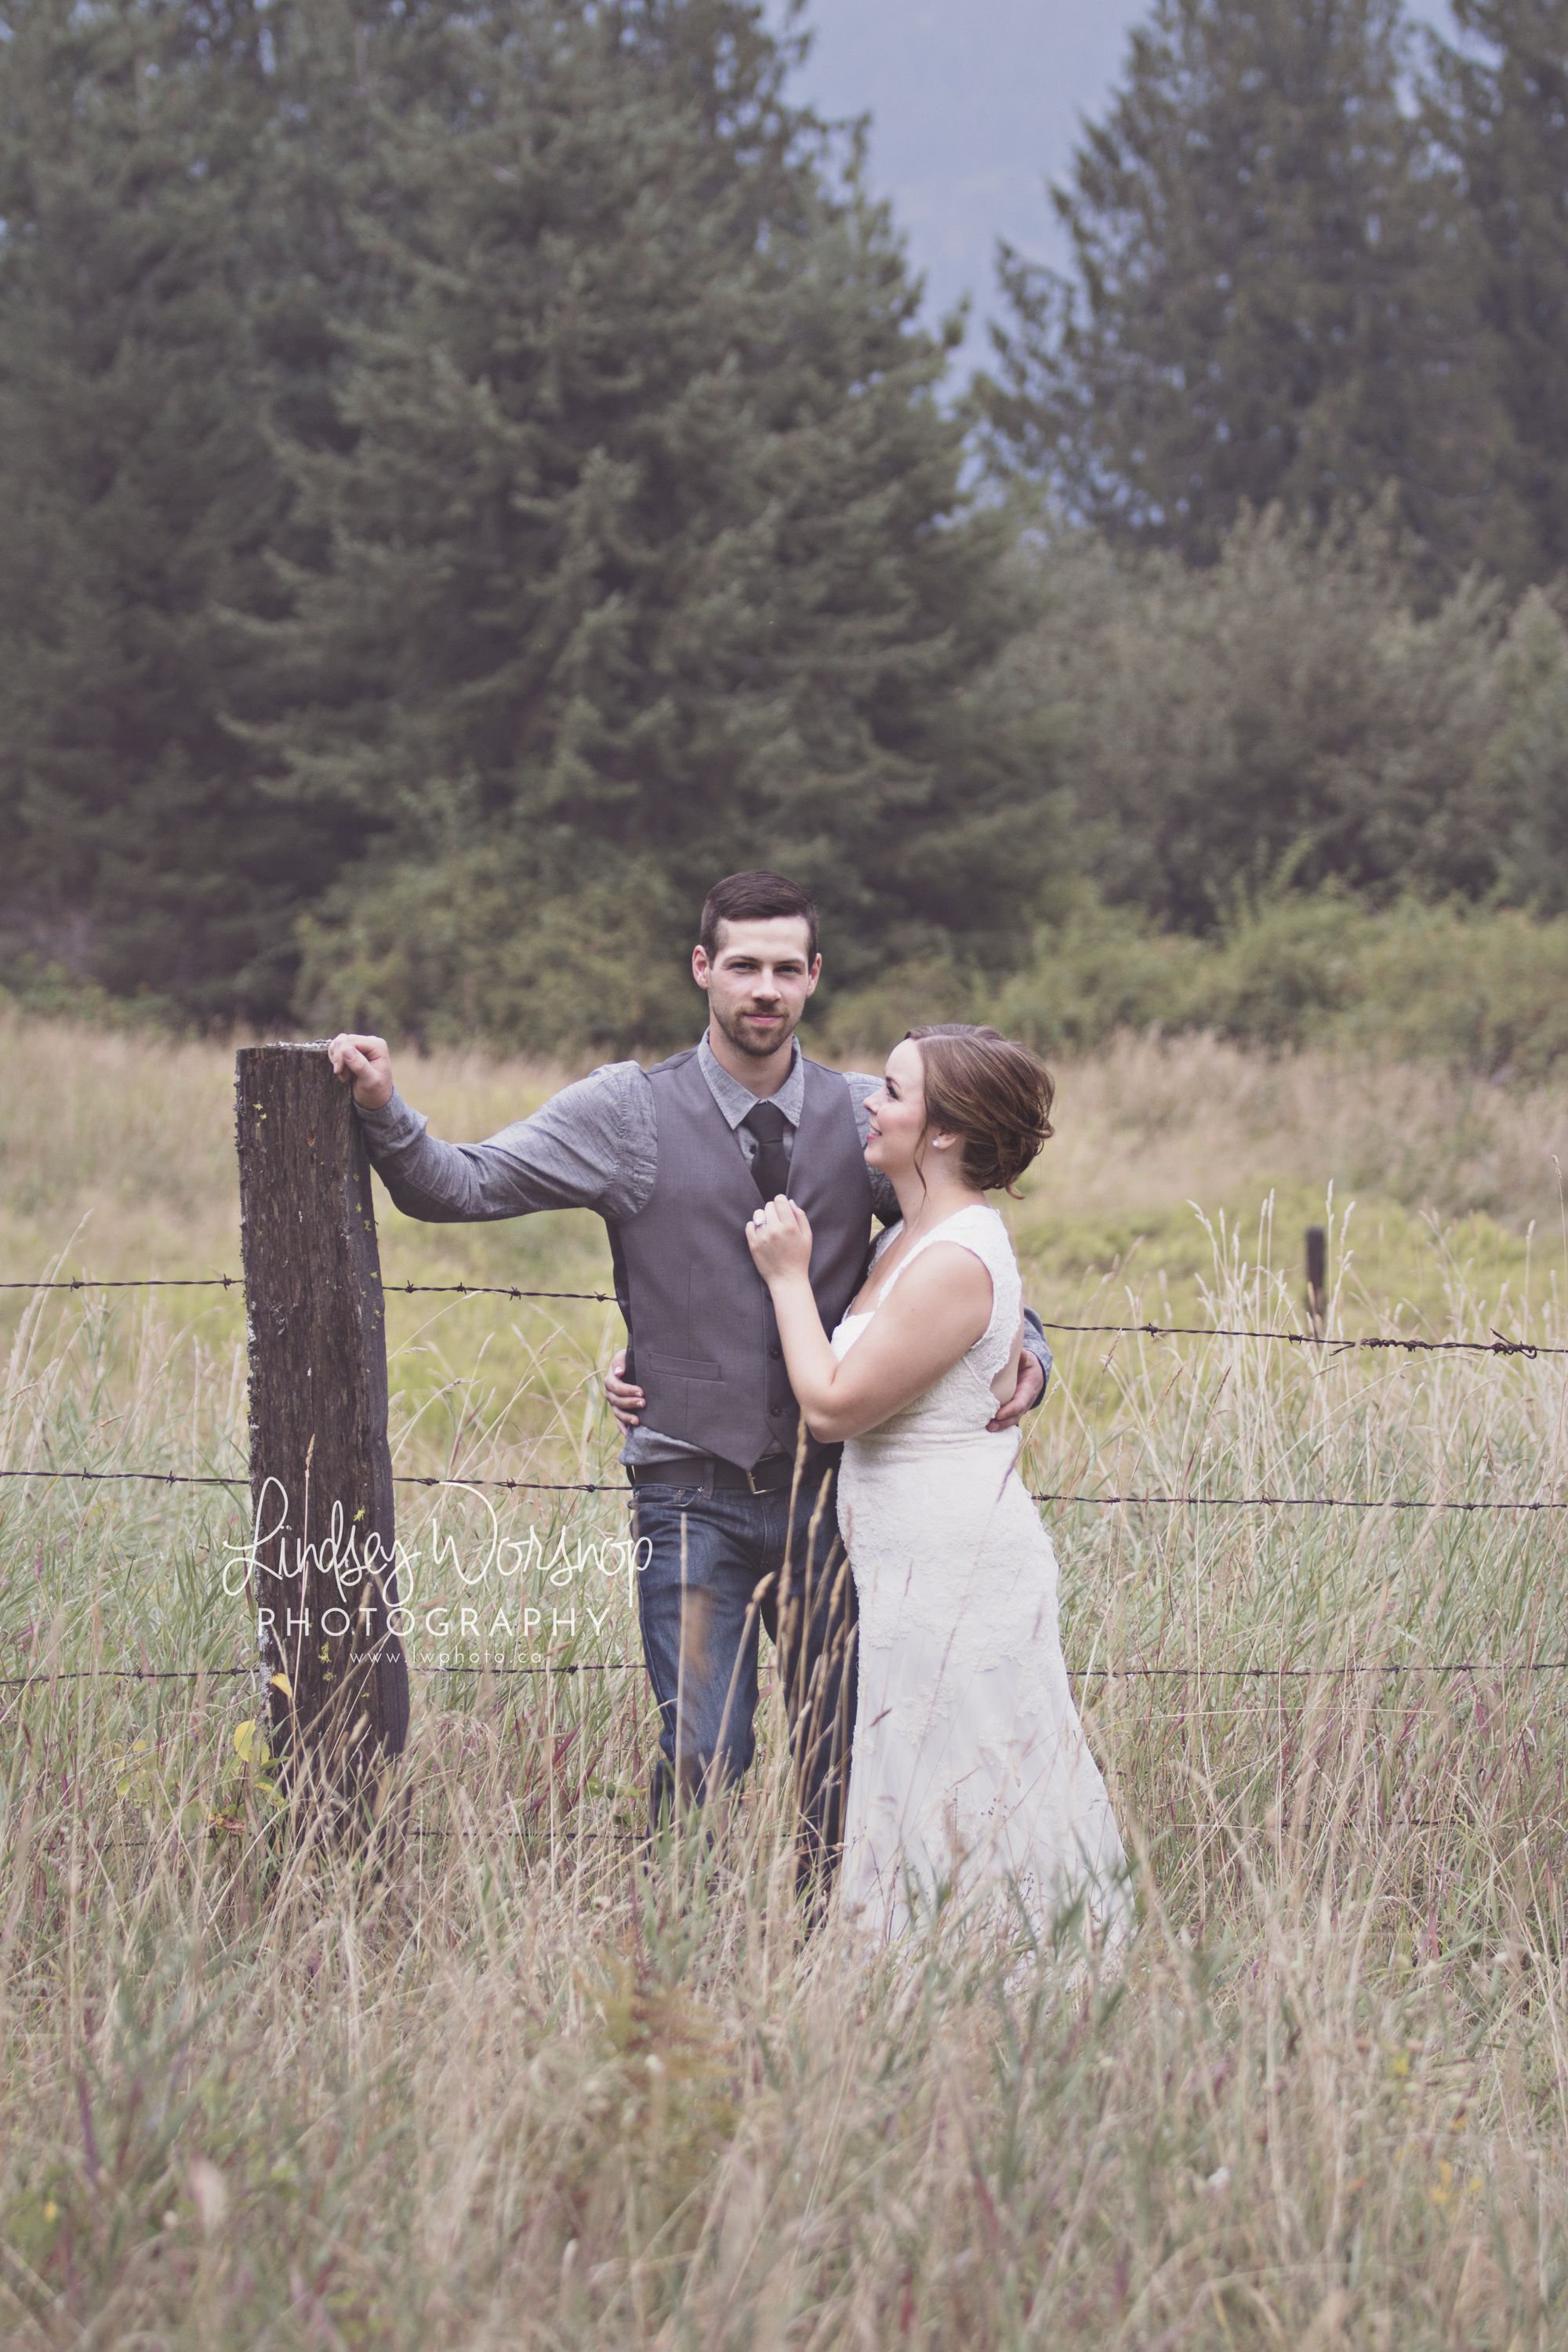 Lindsey Worsnop Photography Country Wedding Wedding Wedding Photo Ideas Wedding Posing Ideas Bride G Outdoor Photographer Wedding Poses Photography